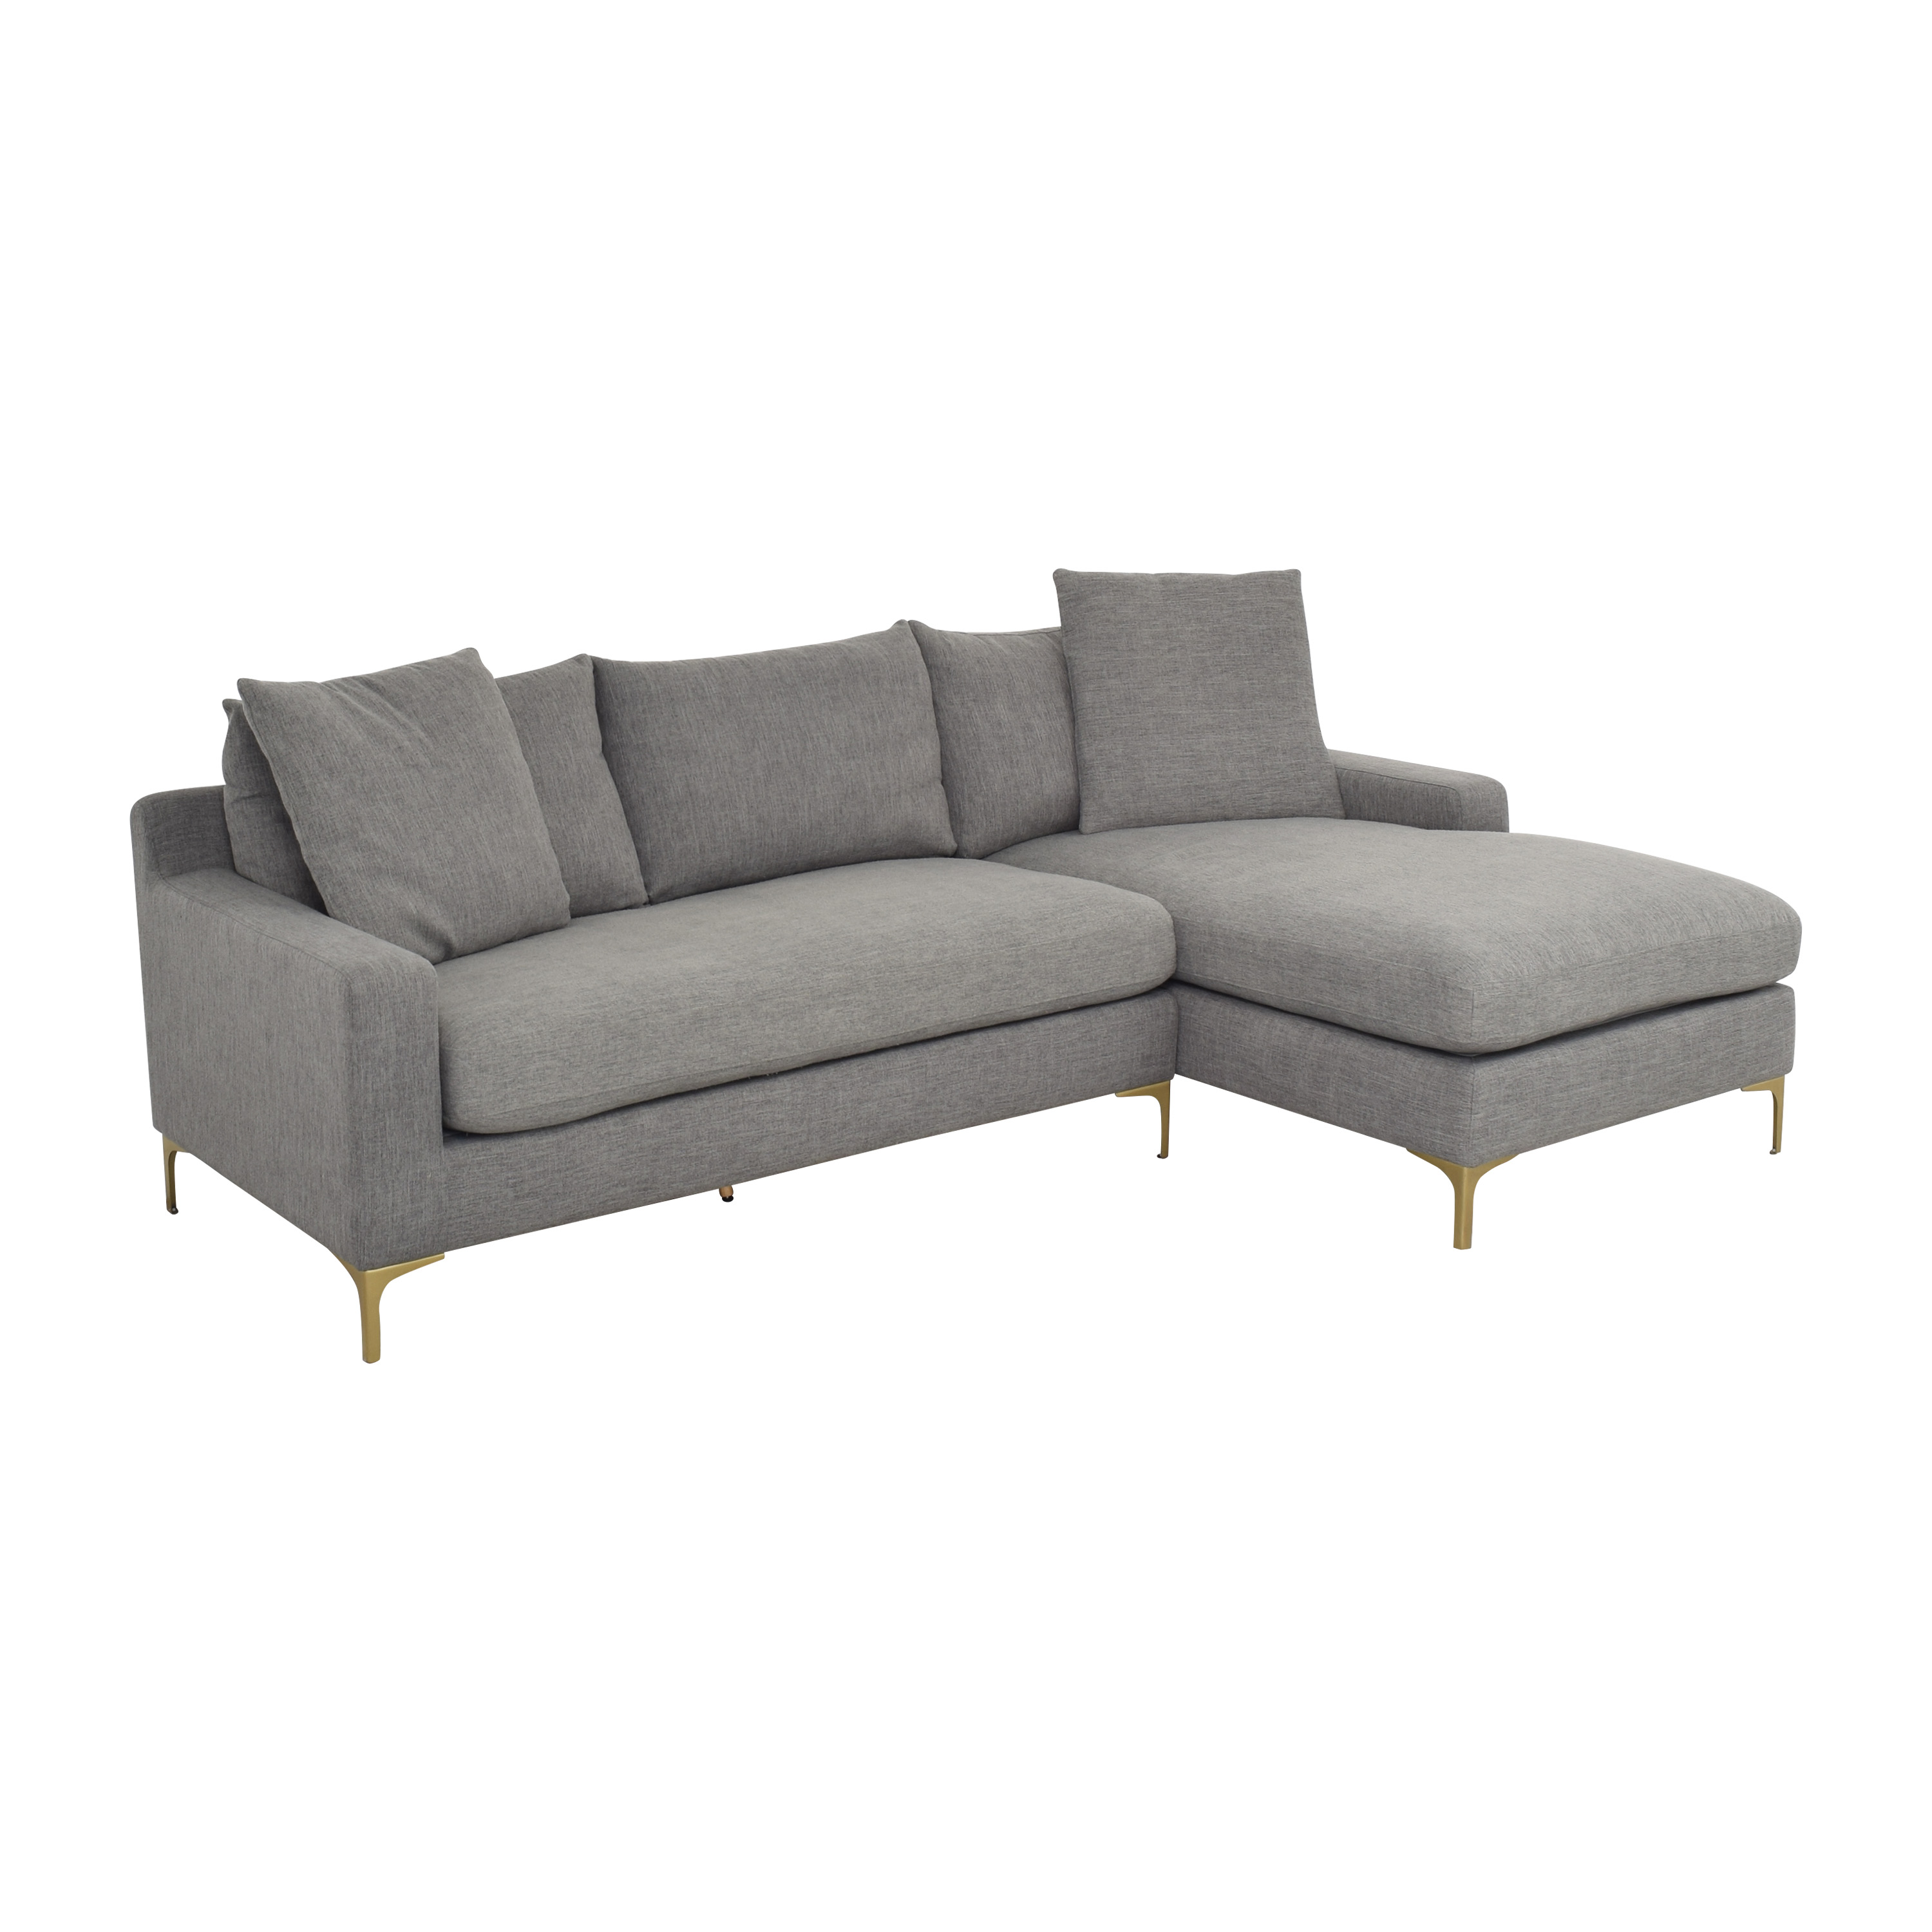 Interior Define Interior Define Sloan Sectional Sofa with Chaise gray